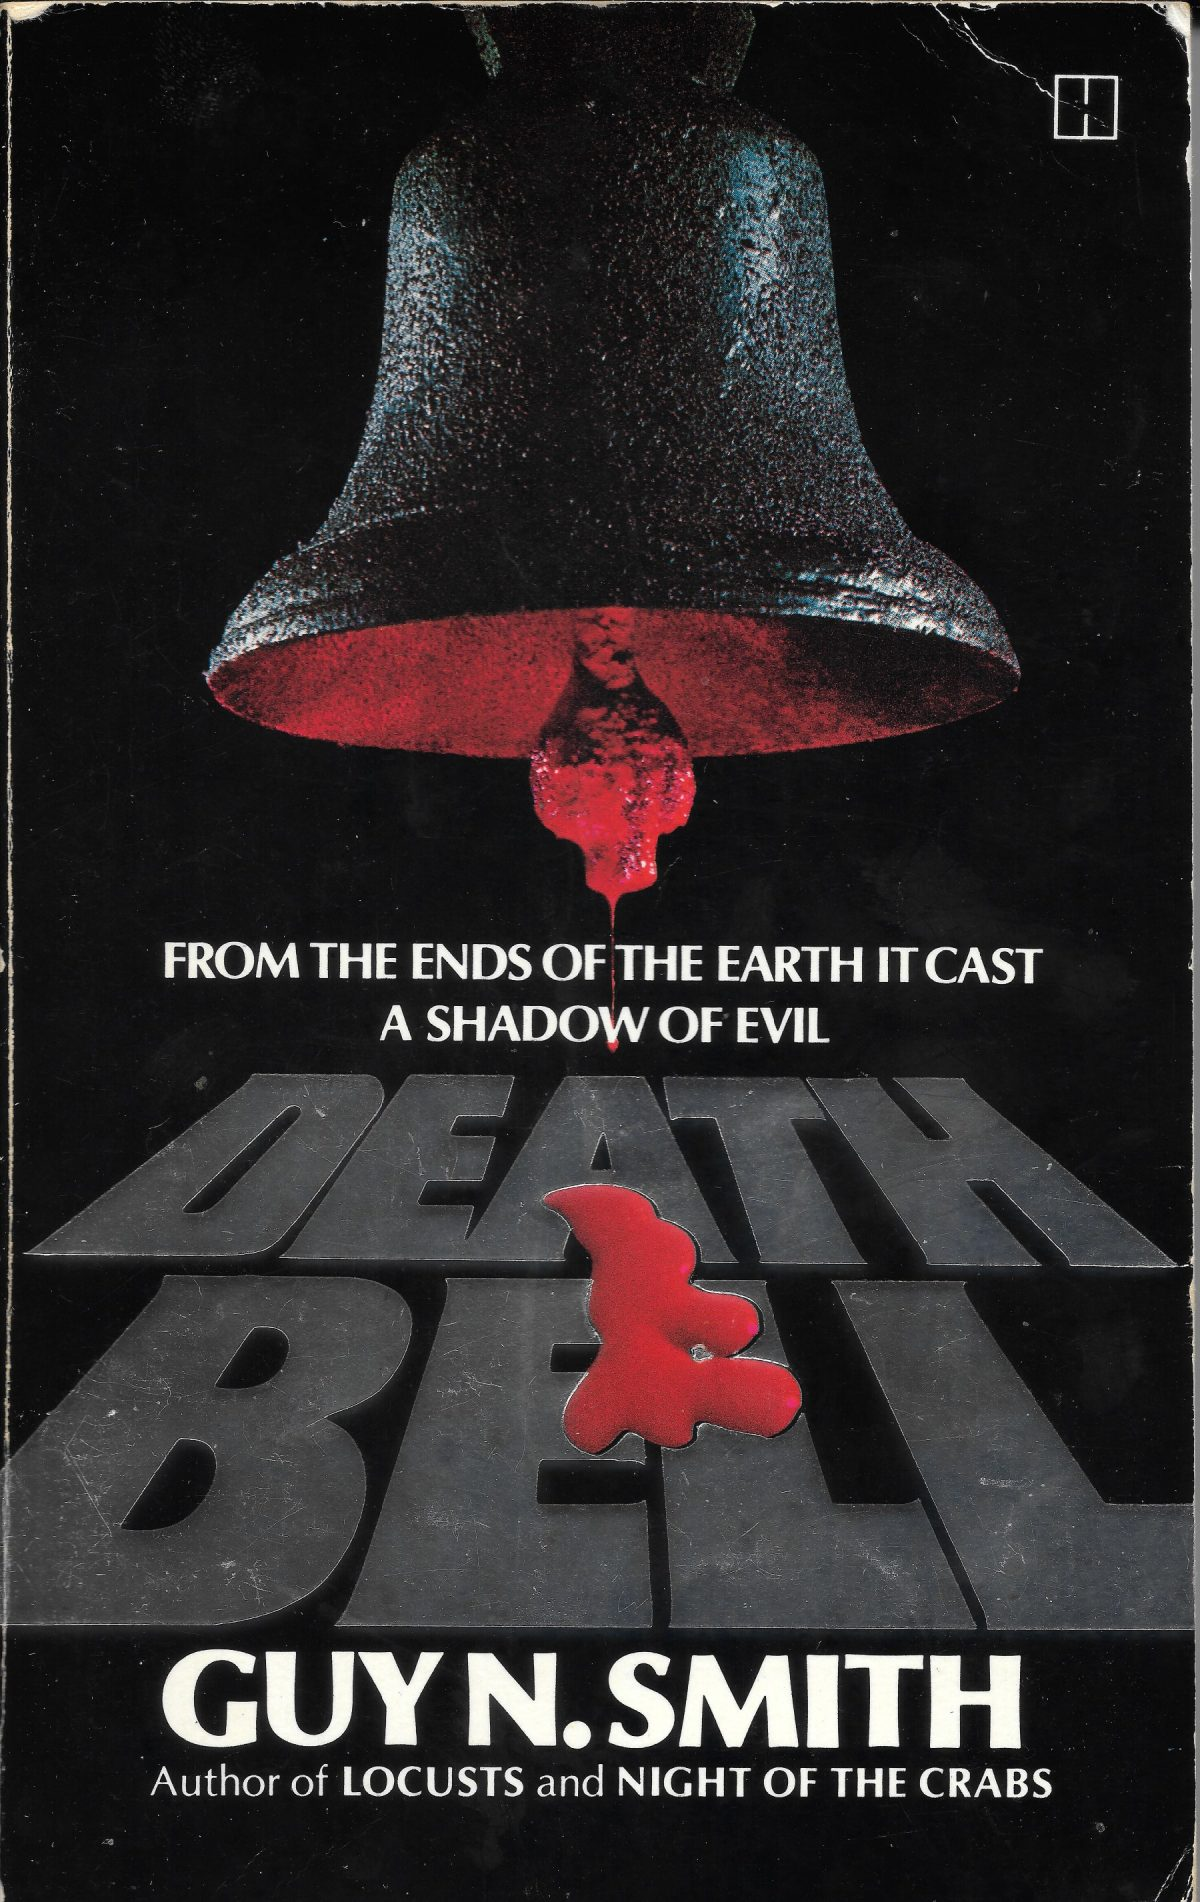 Guy N Smith, horror fictions, horror, books, Death Bell